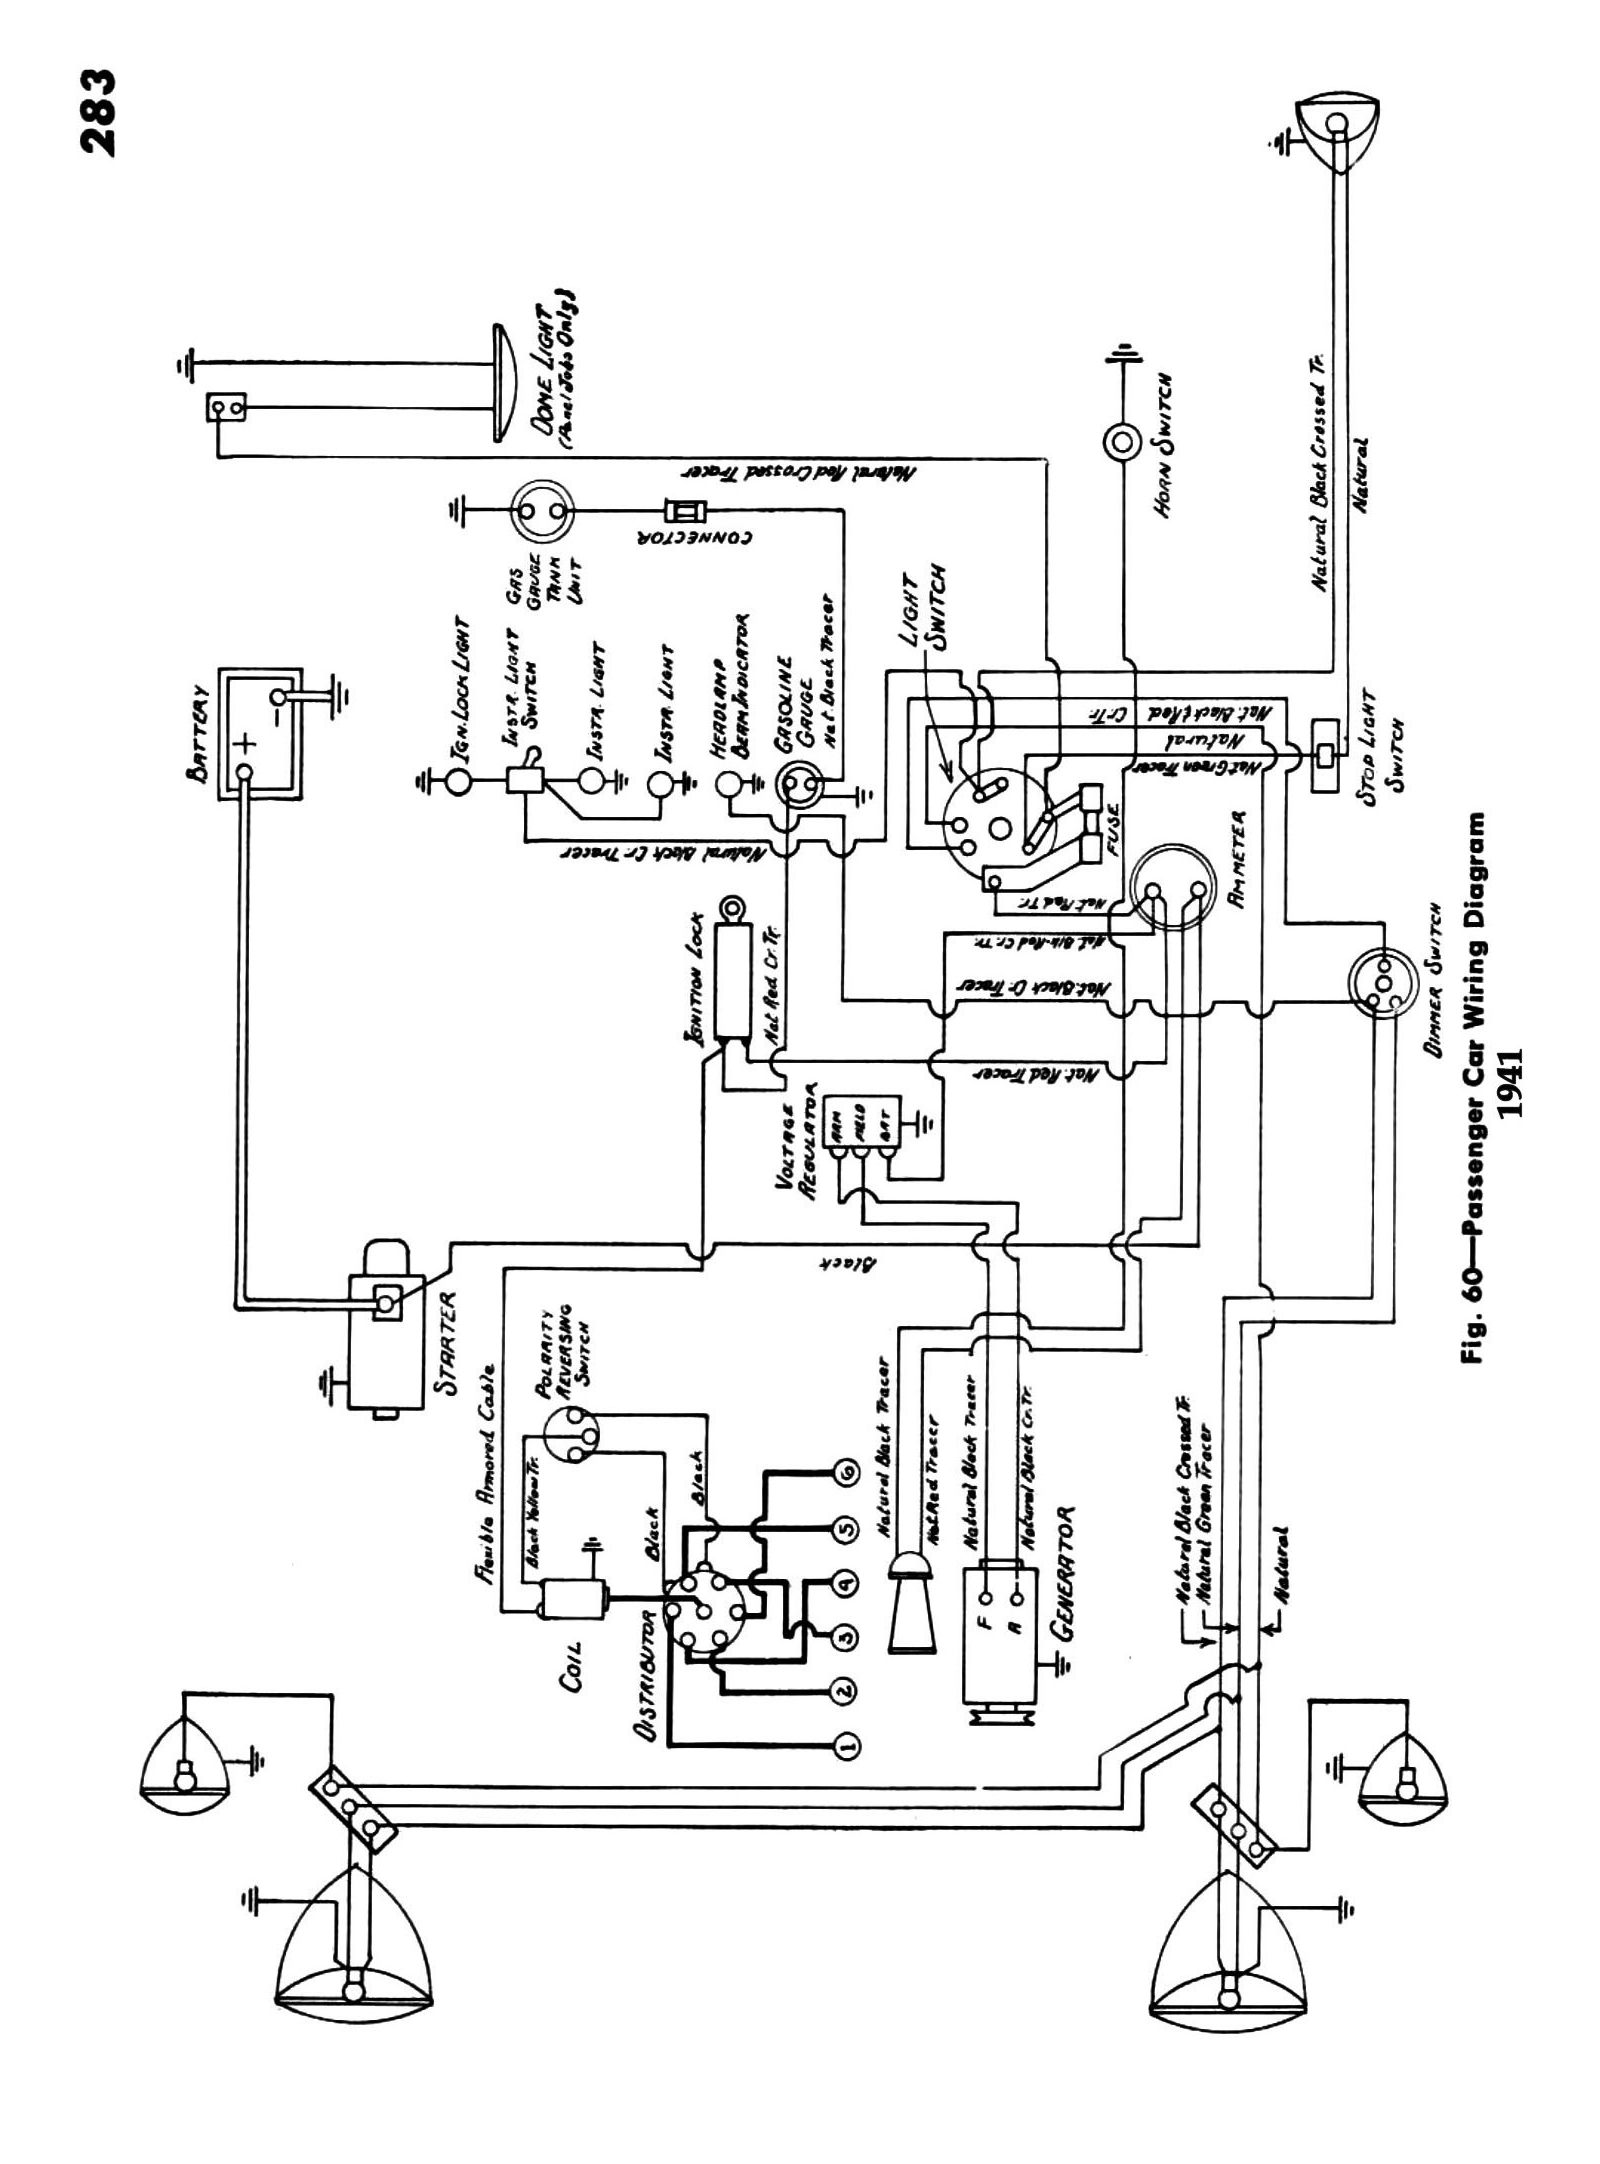 41csm283 chevy wiring diagrams international truck wiring diagram schematic at edmiracle.co